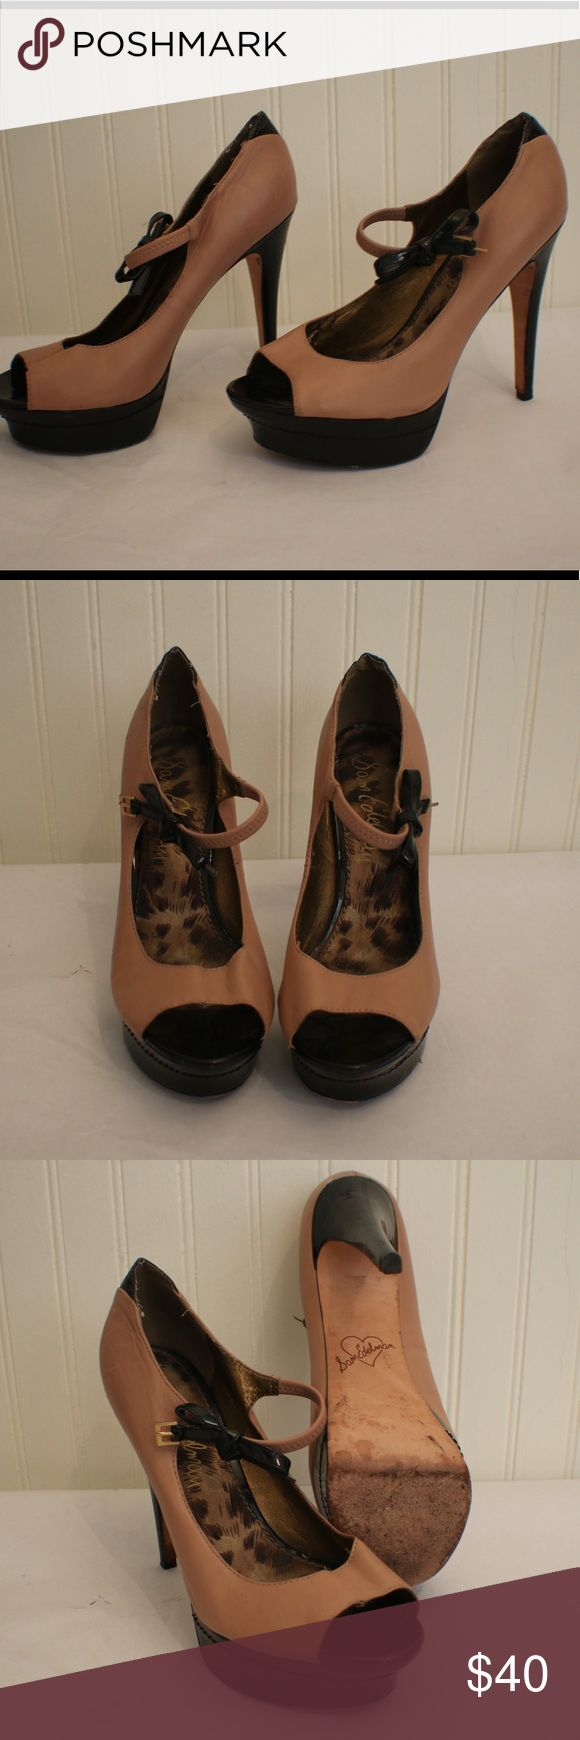 Sam Edelman Heels Mary Jane style heels in used condition. Extremely comfortable heels! Sam Edelman Shoes Heels